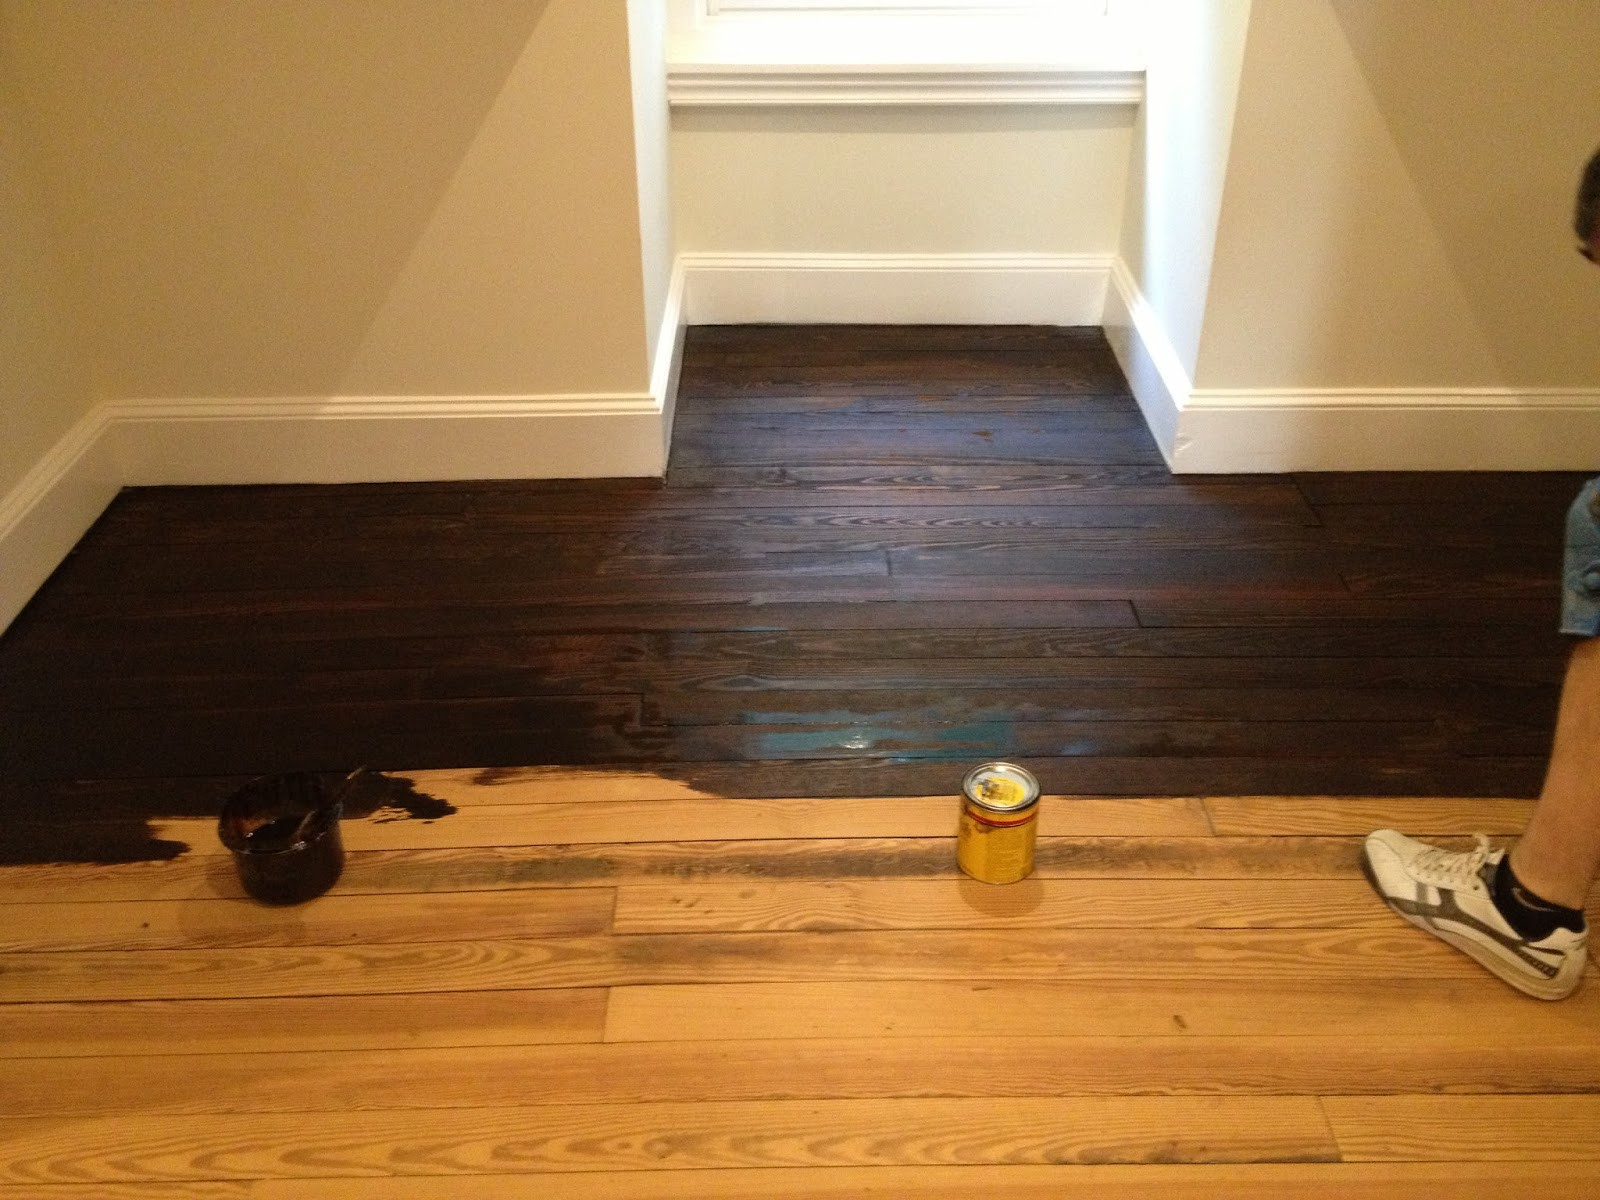 Best ideas about DIY Wood Floors . Save or Pin High Street Market 3rd Floor Refinished Hardwood Floor DIY Now.